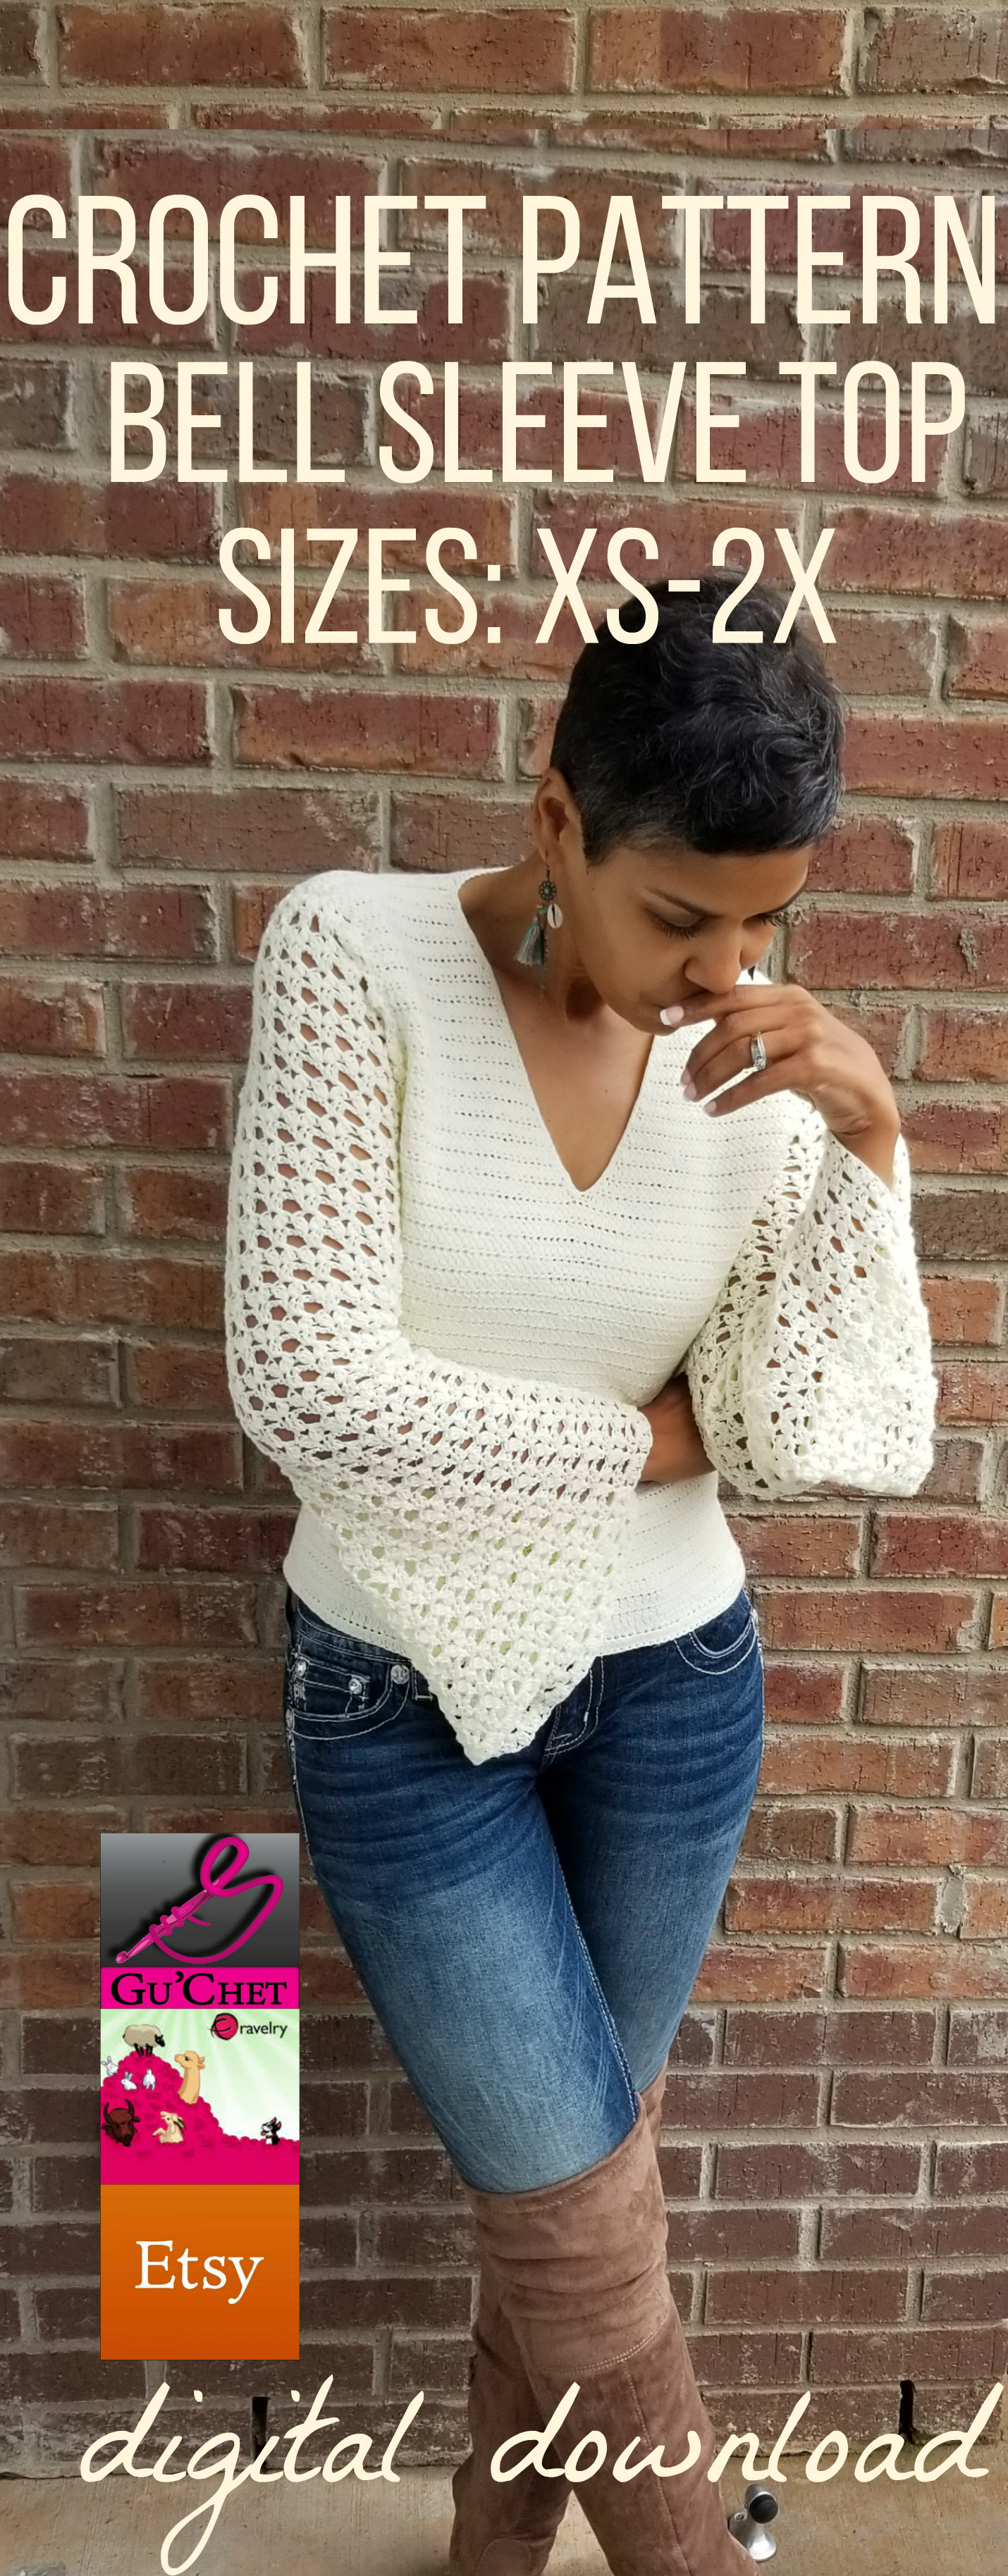 7_Crochet Top Pattern by GuChet_Bell Sleeve Top_1.jpg